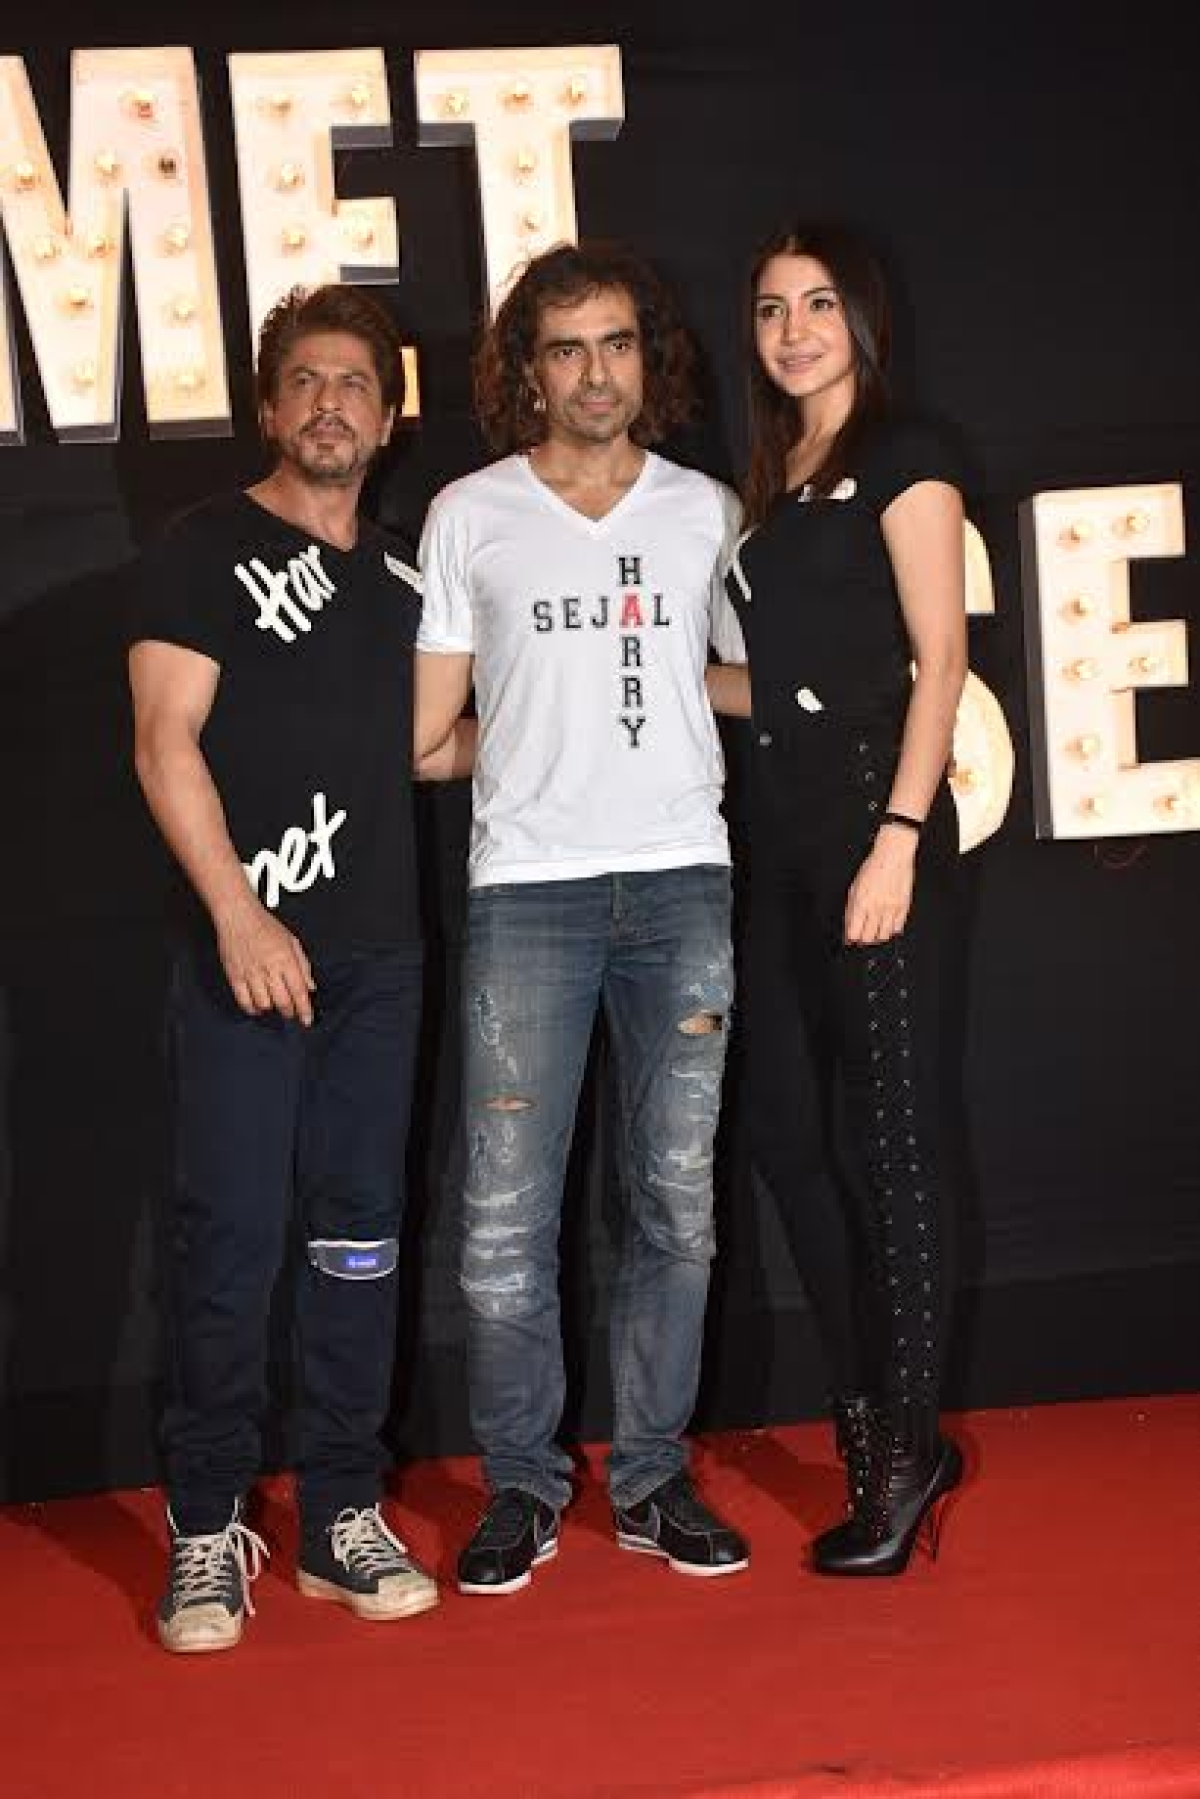 Photo Gallery: Shah Rukh Khan and Anushka Sharma at 'Beech Beech Mein' song launch